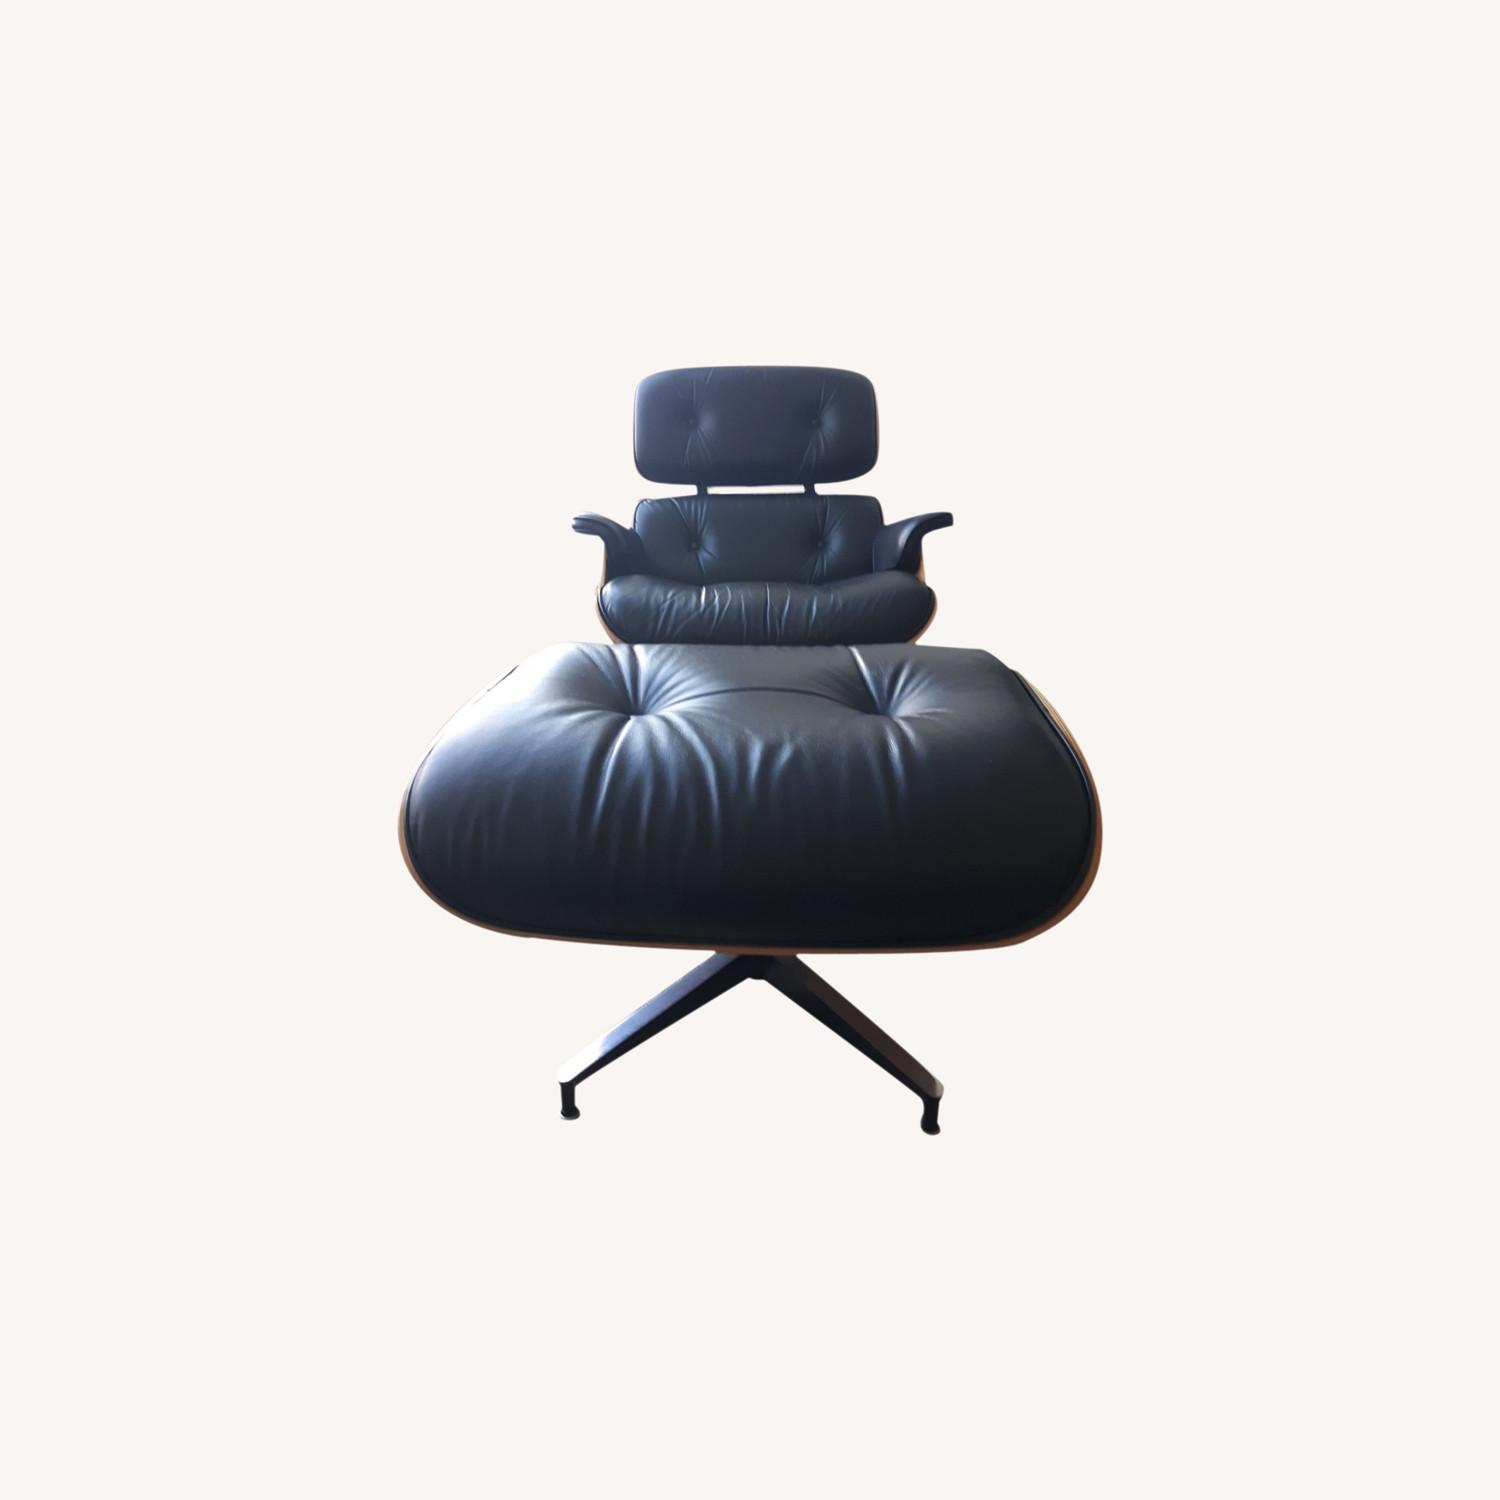 Herman Miller Eames Lounge Chair and Ottoman - image-0